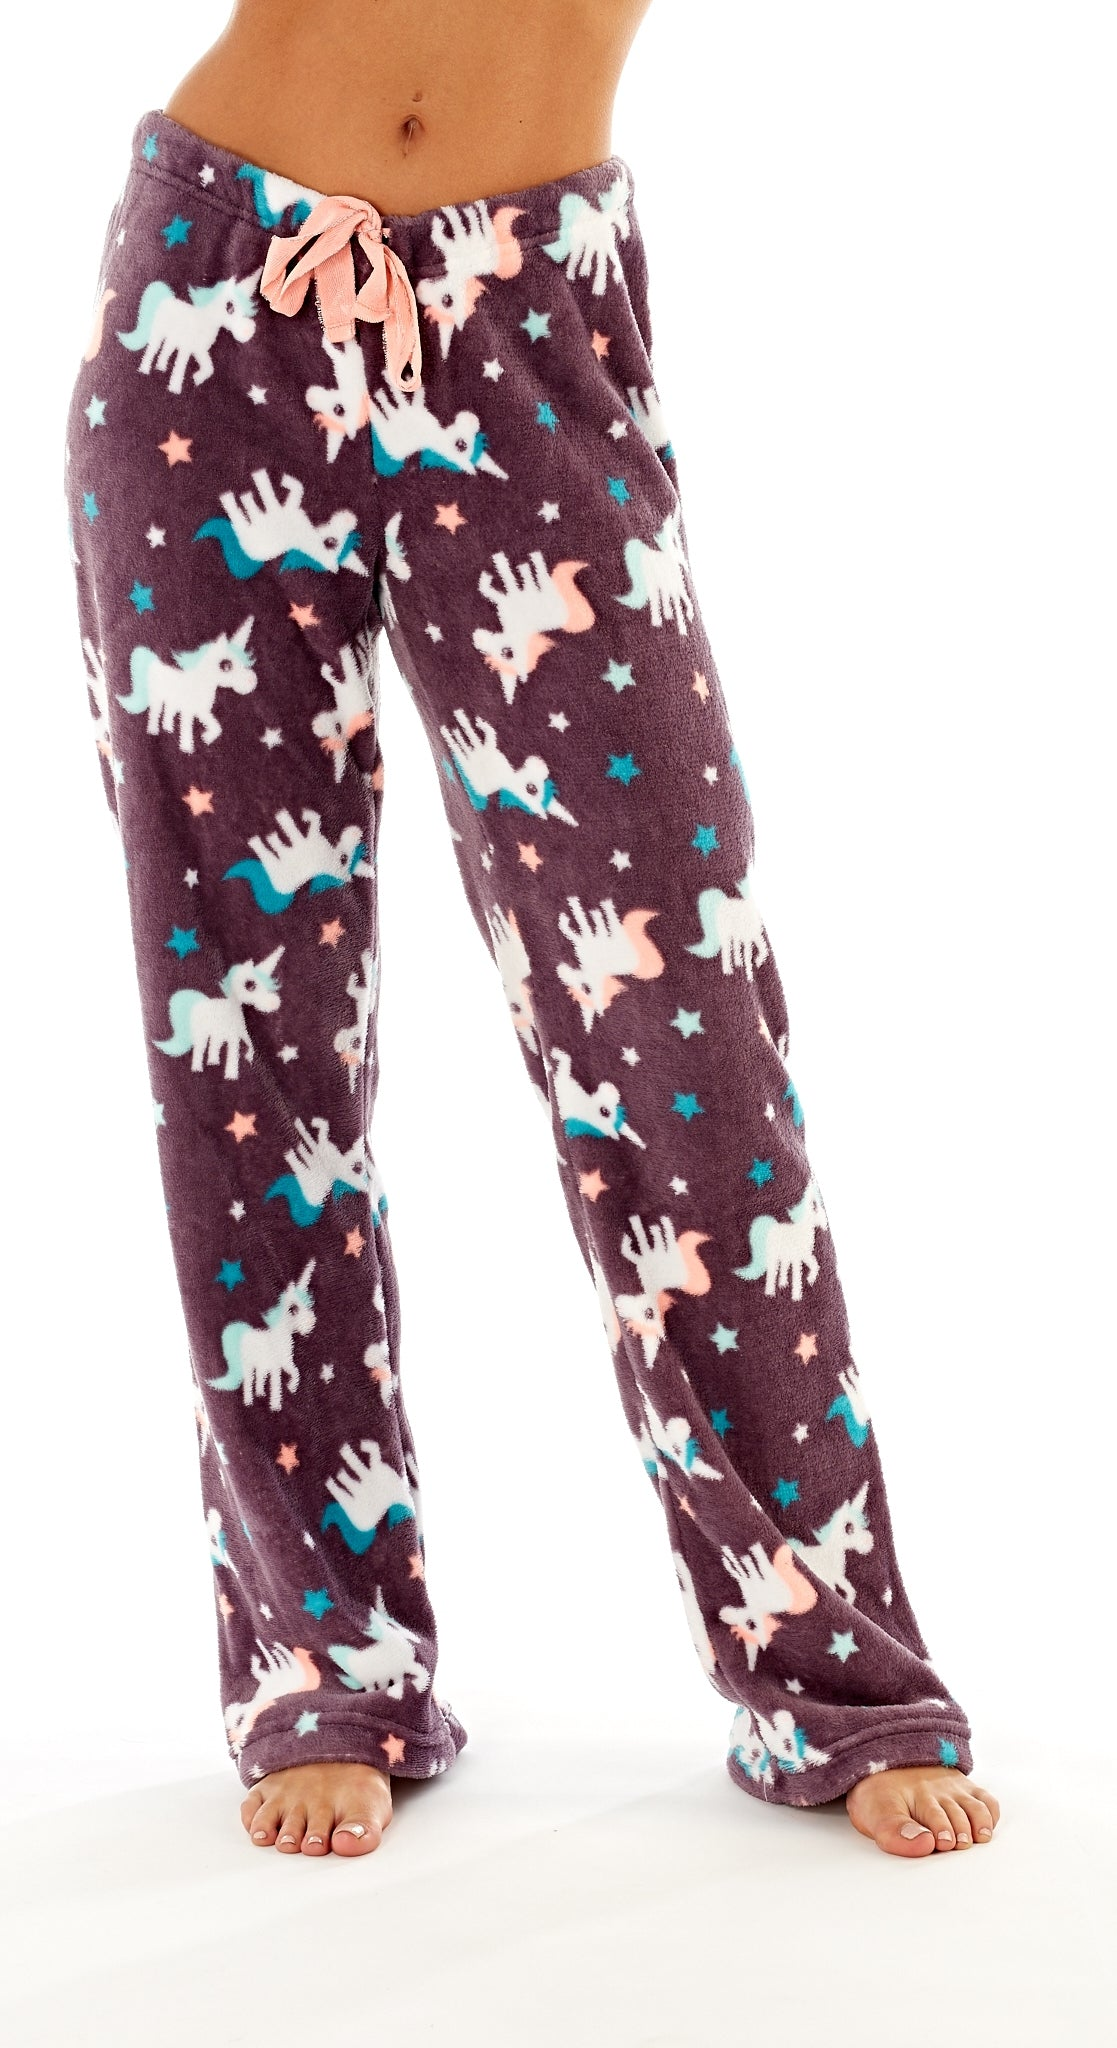 Octave Ladies Loungewear Pants Pyjama Bottoms - Unicorn